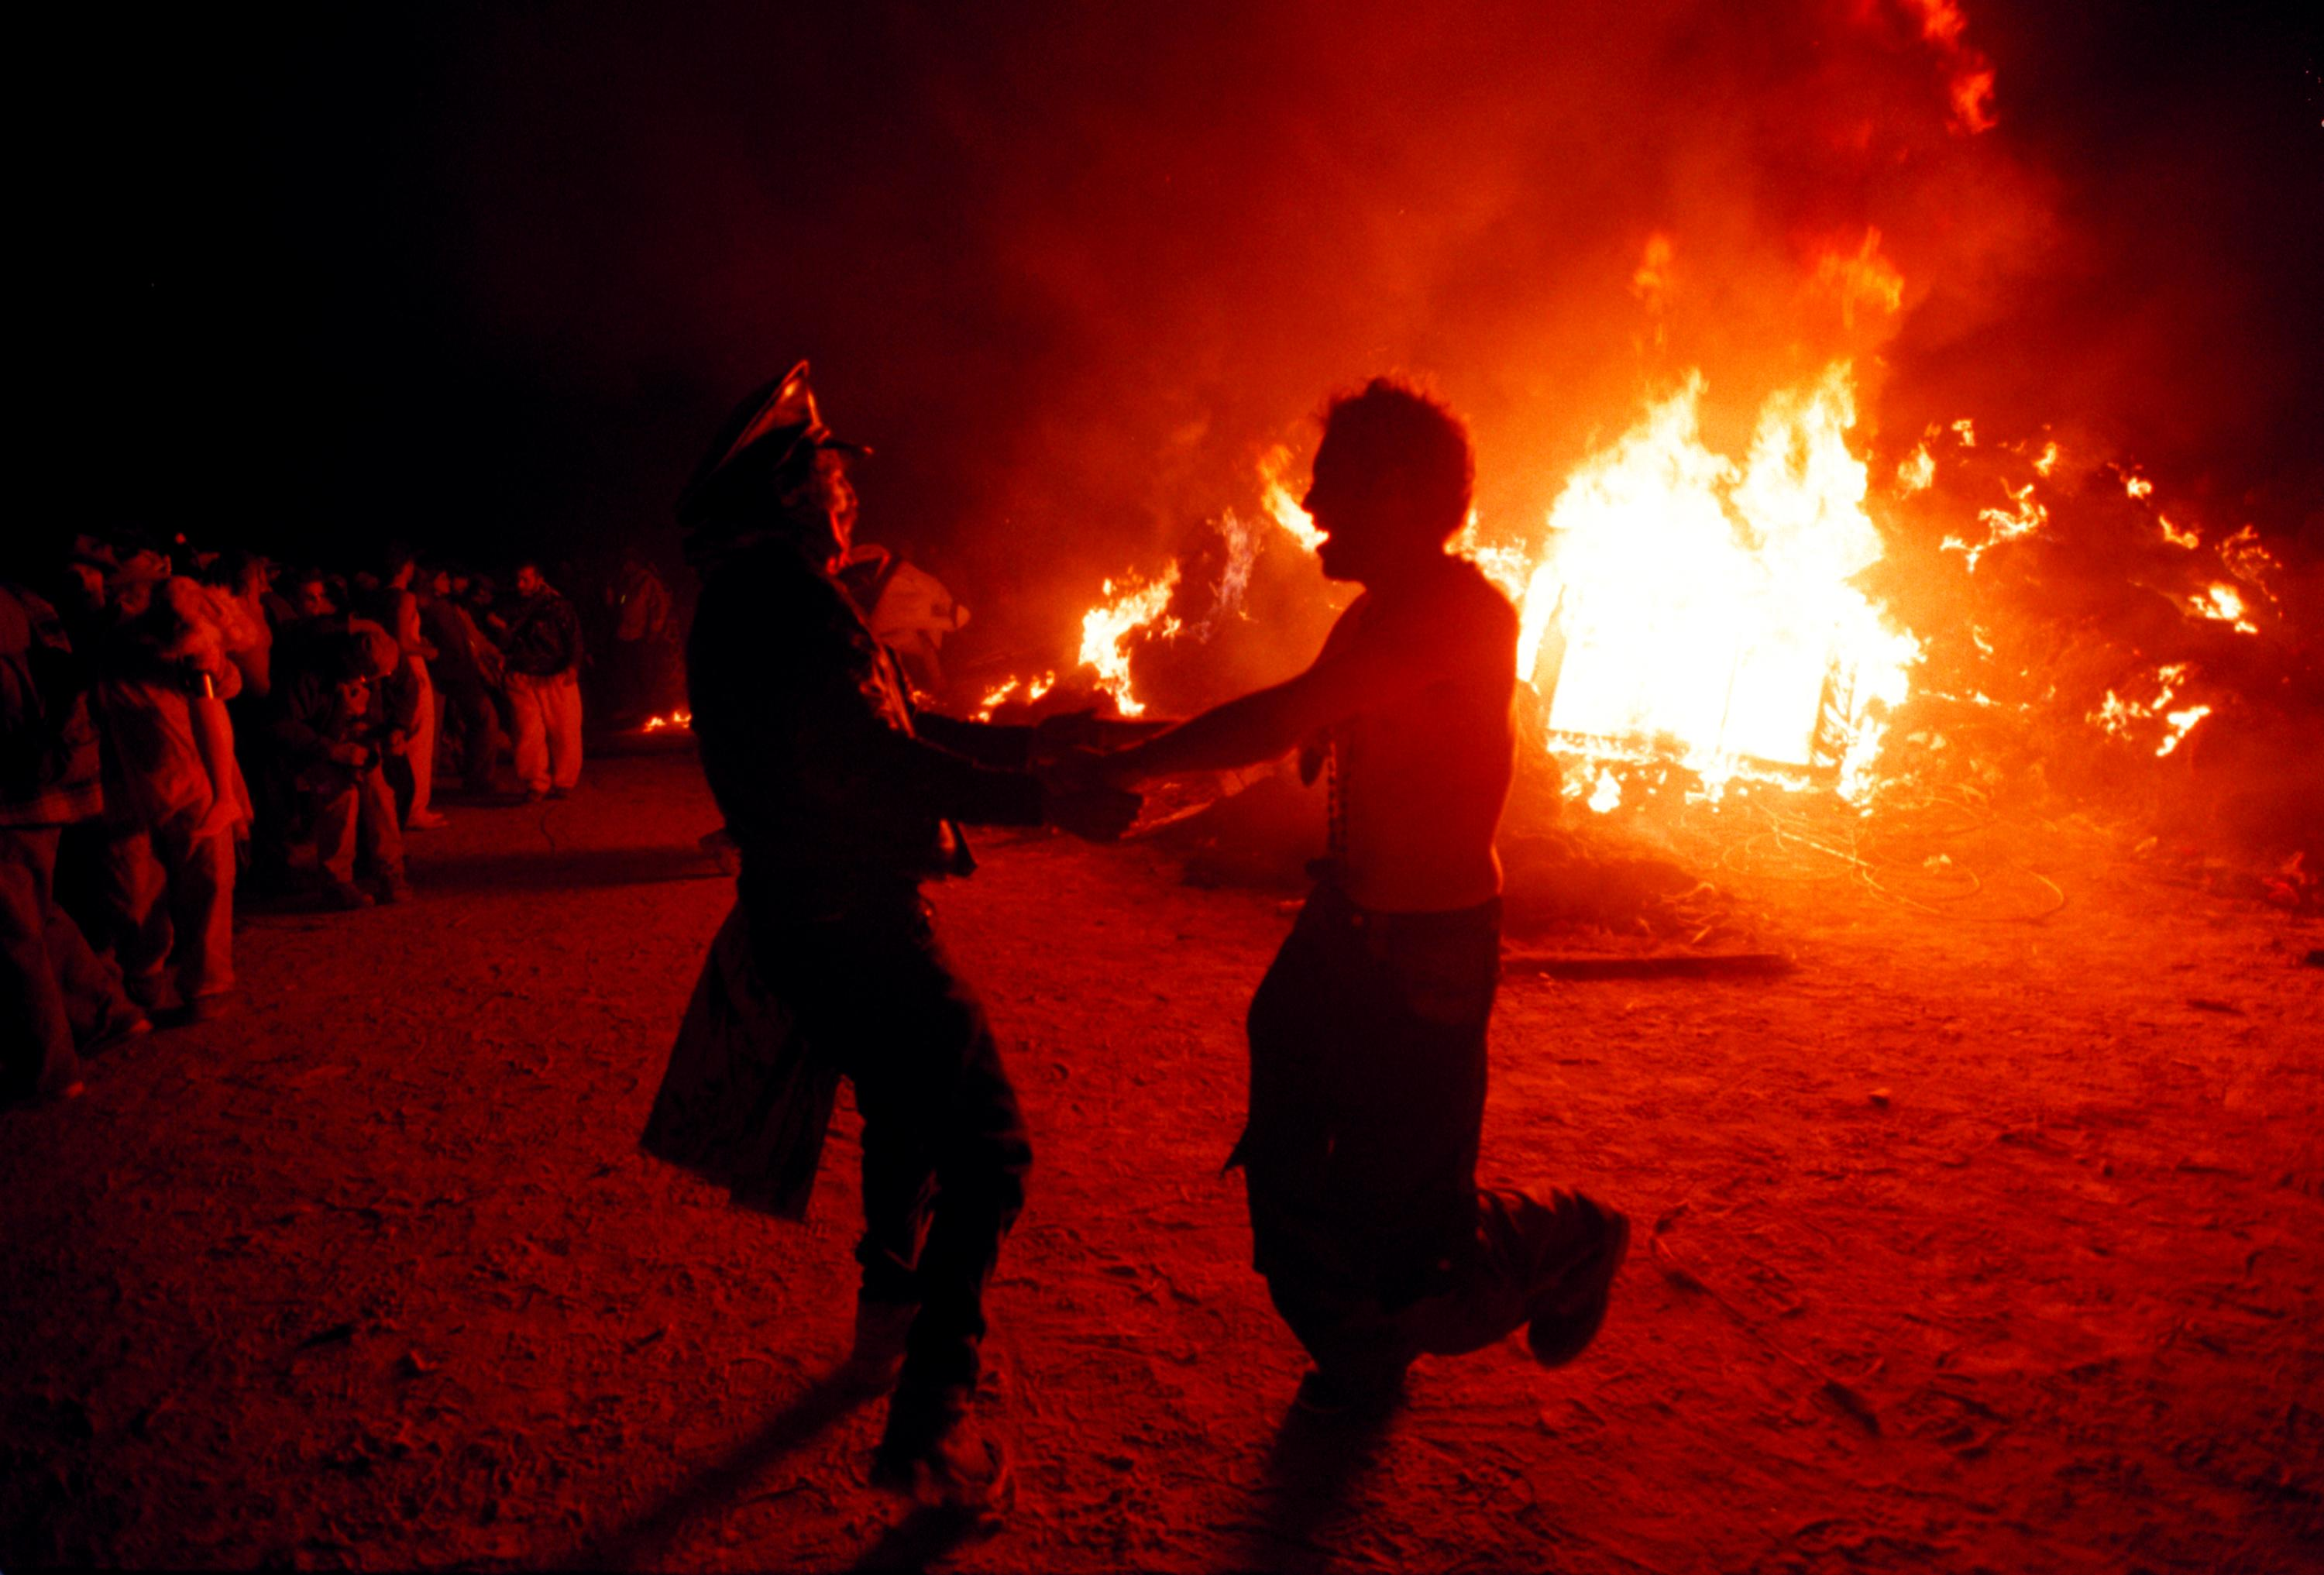 People Did Some Weird Sh*t At Burning Man Festival This Year GettyImages 72327359